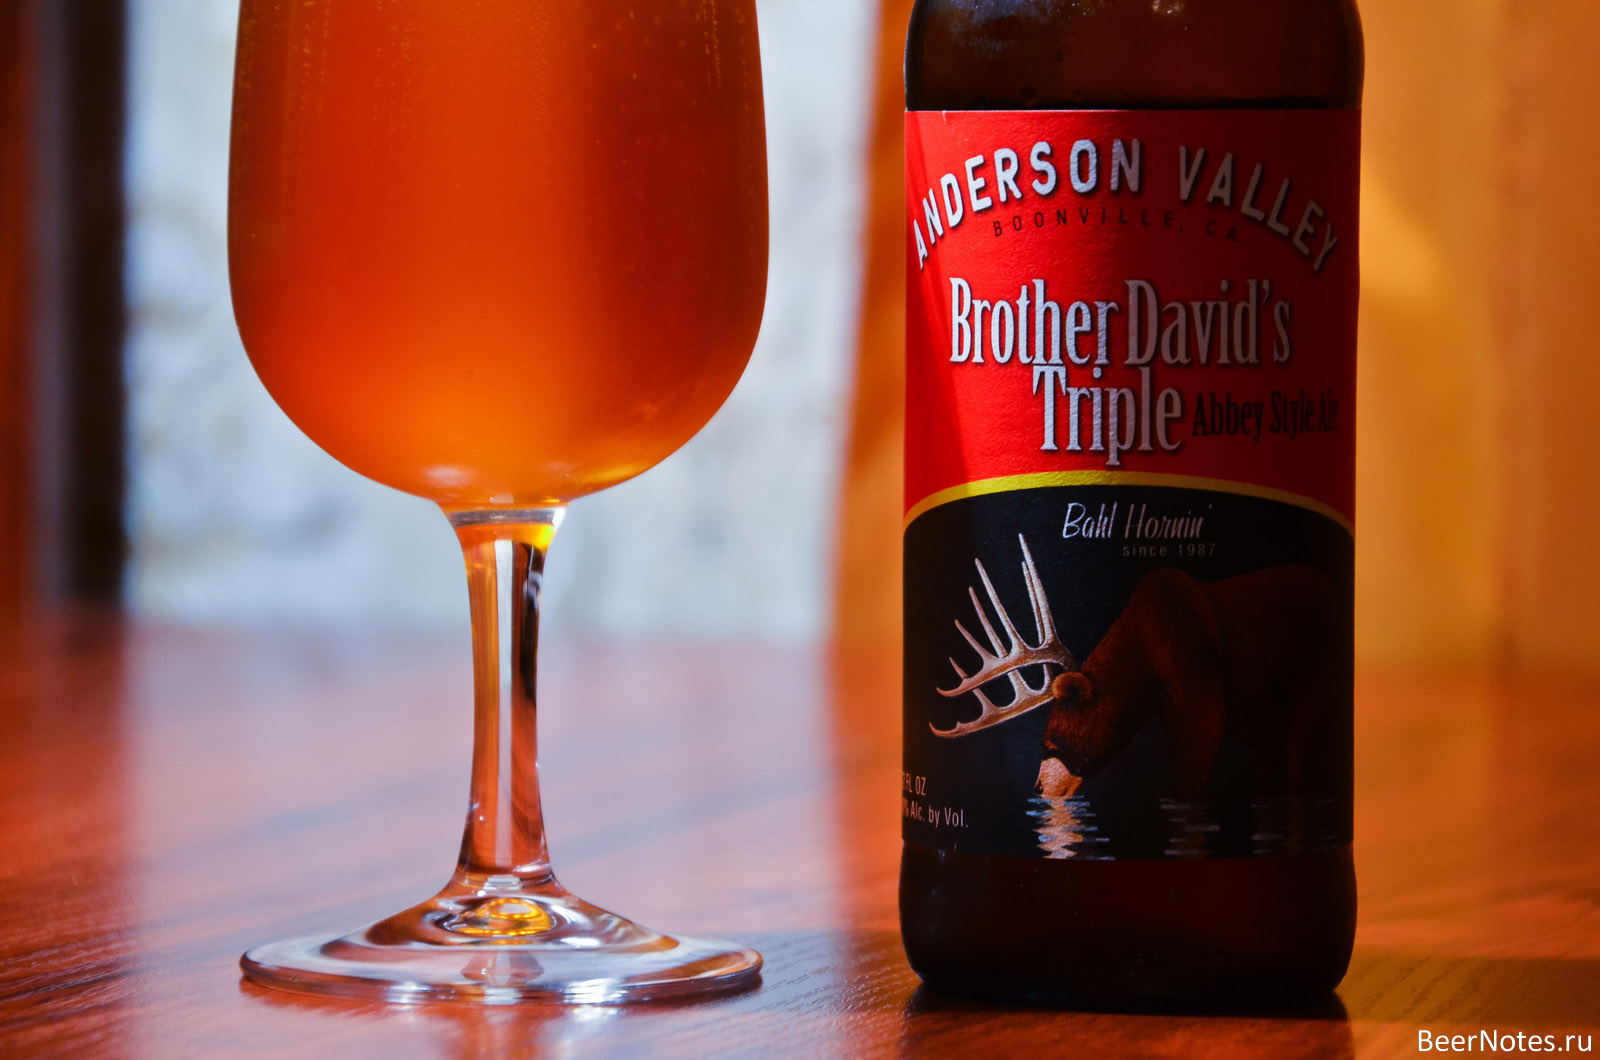 Anderson Valley Brother David's Triple Abbey Style Ale7